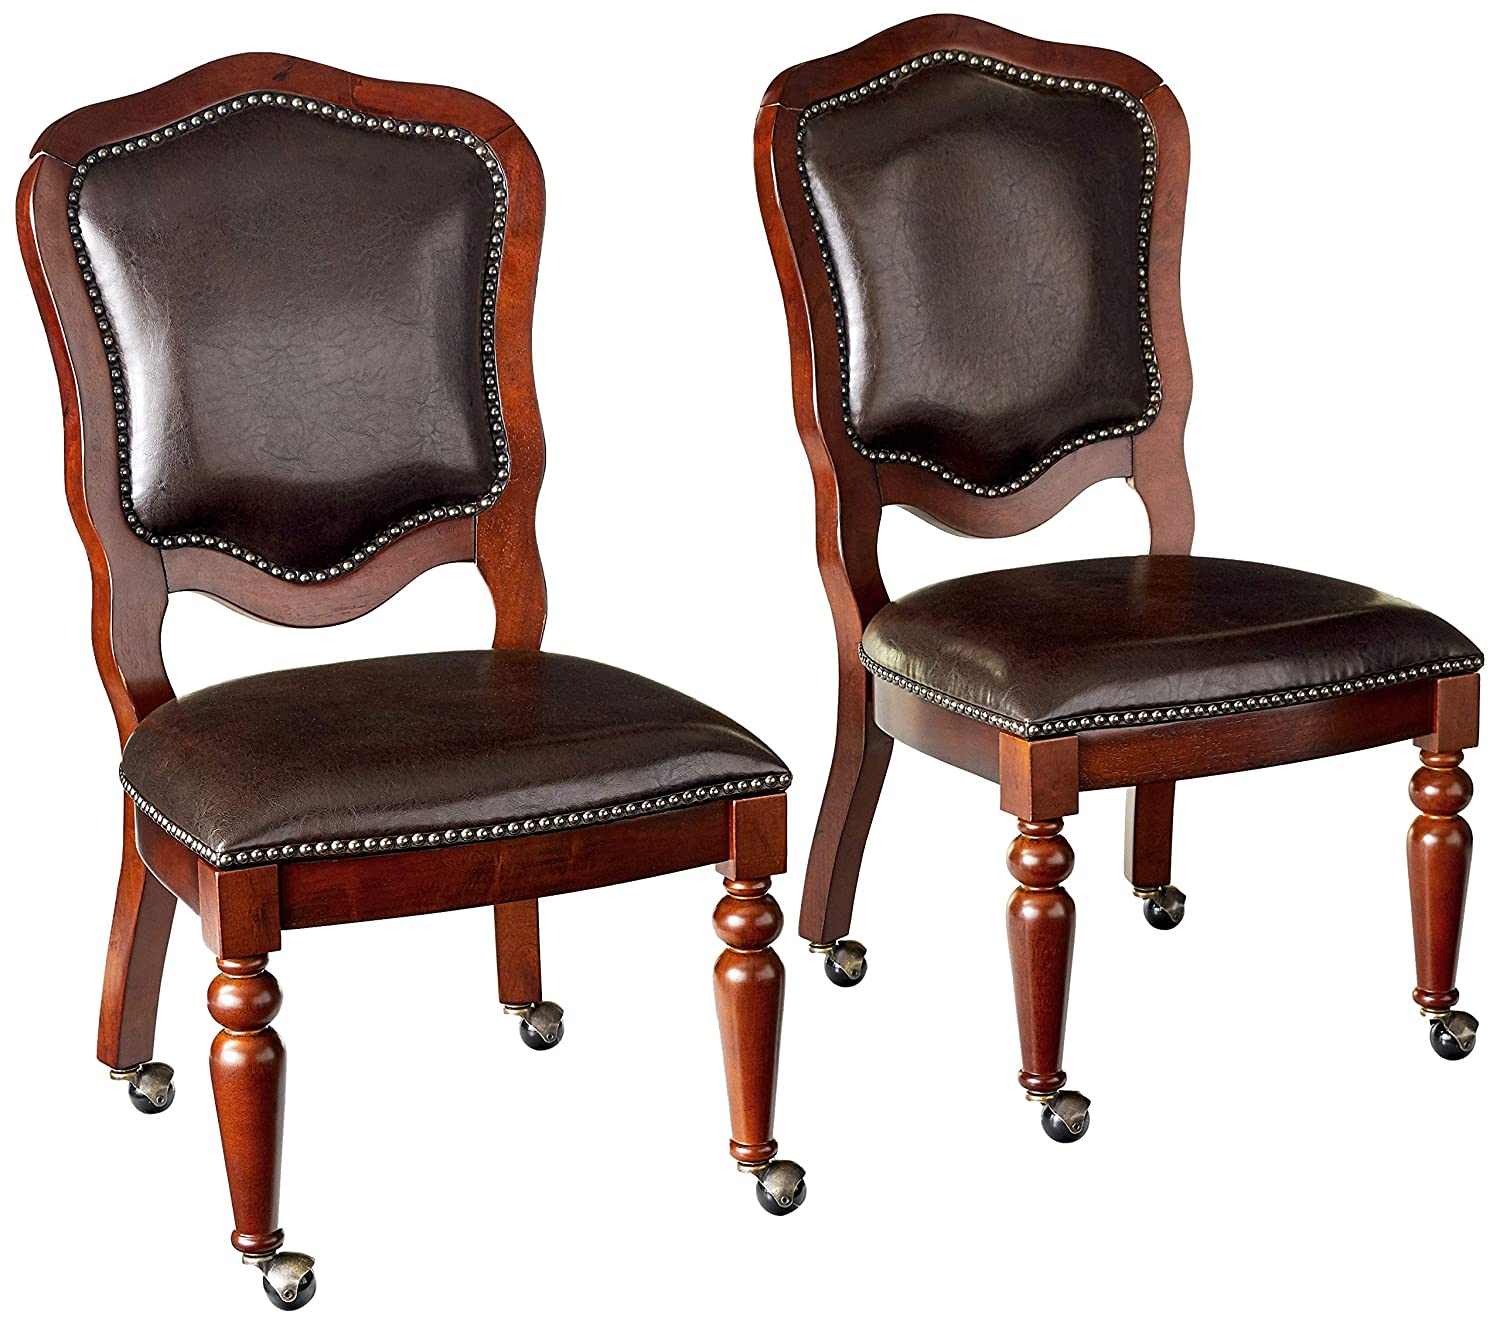 Sunset Trading Bellagio Caster Set of 2 Game-Dining-Chair, Wheels